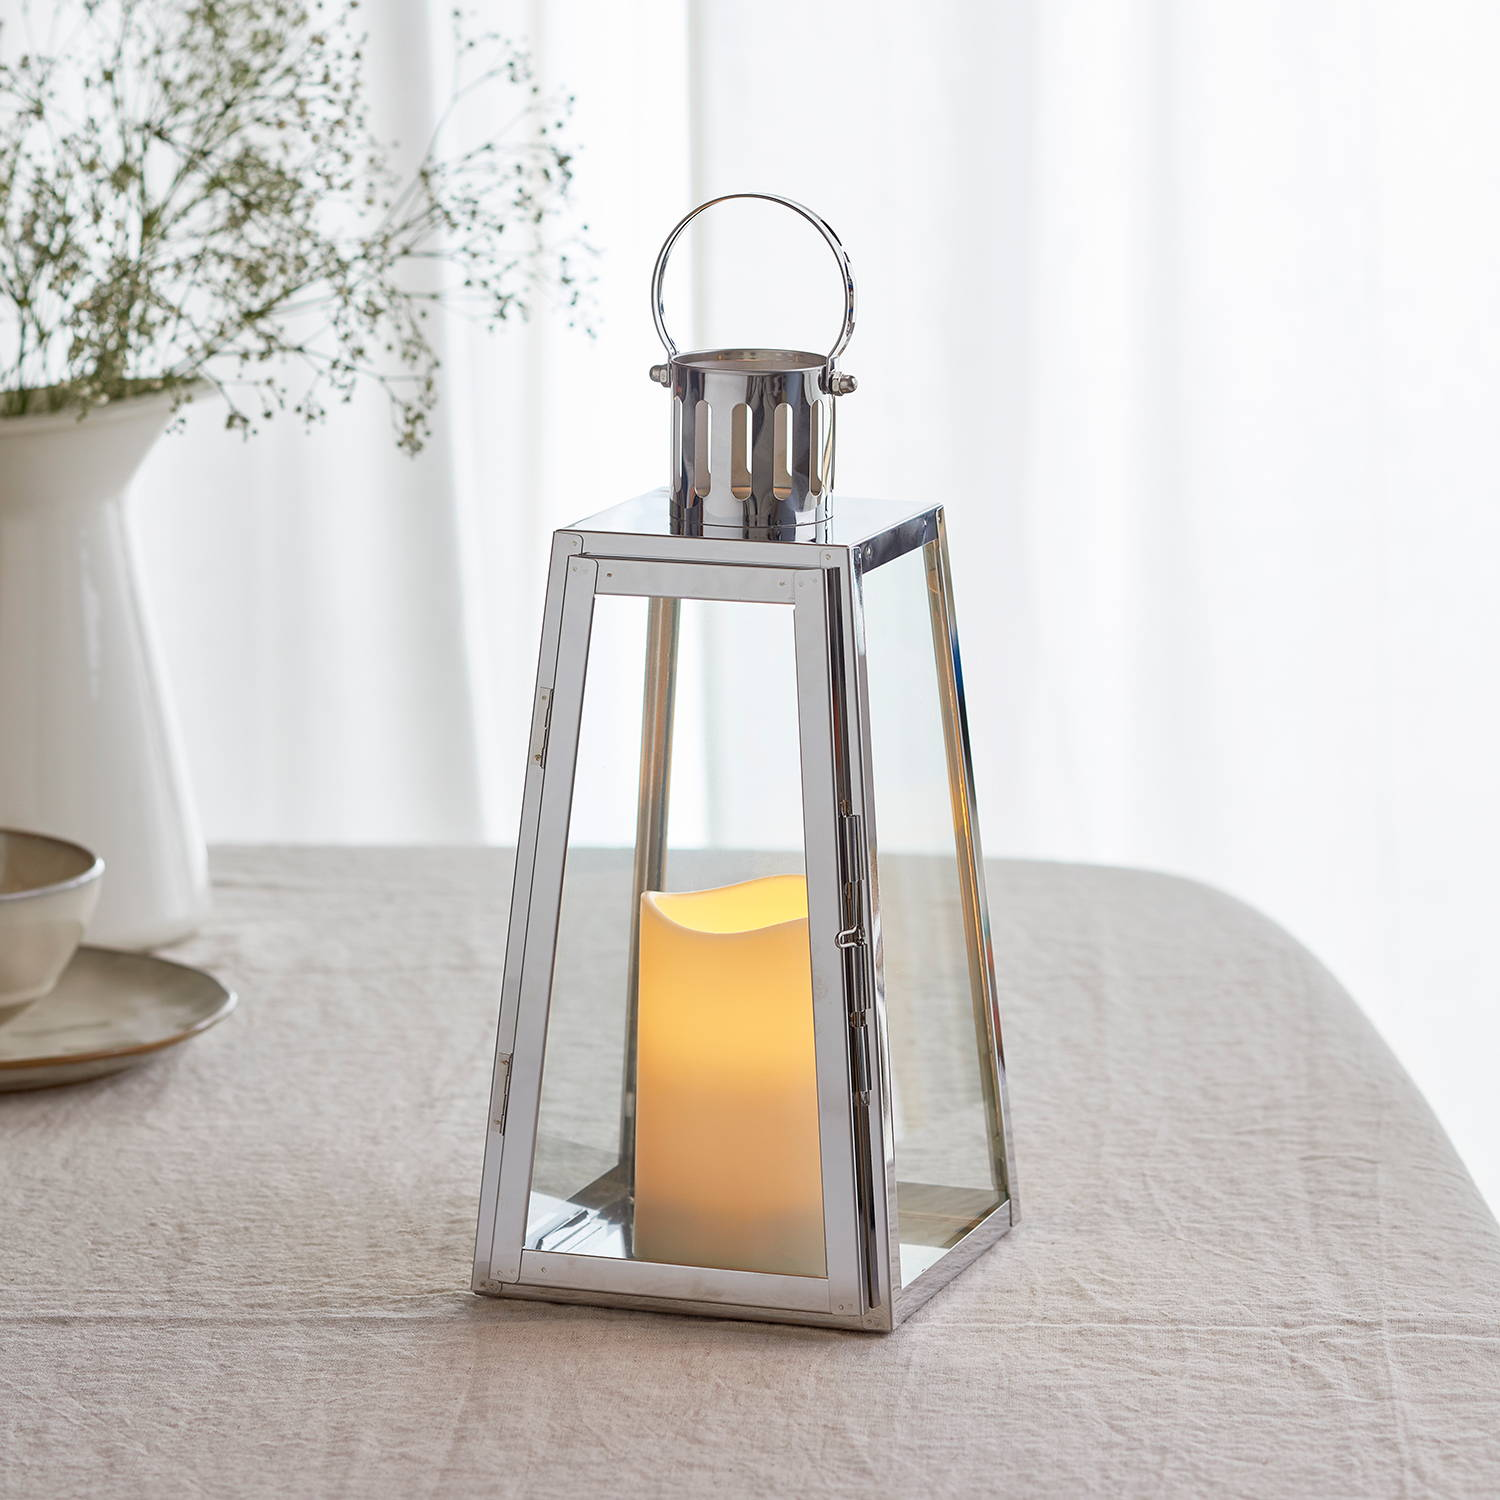 Stainless steel battery lantern with LED candle inside illuminated and sat on table covered with white tablecloth